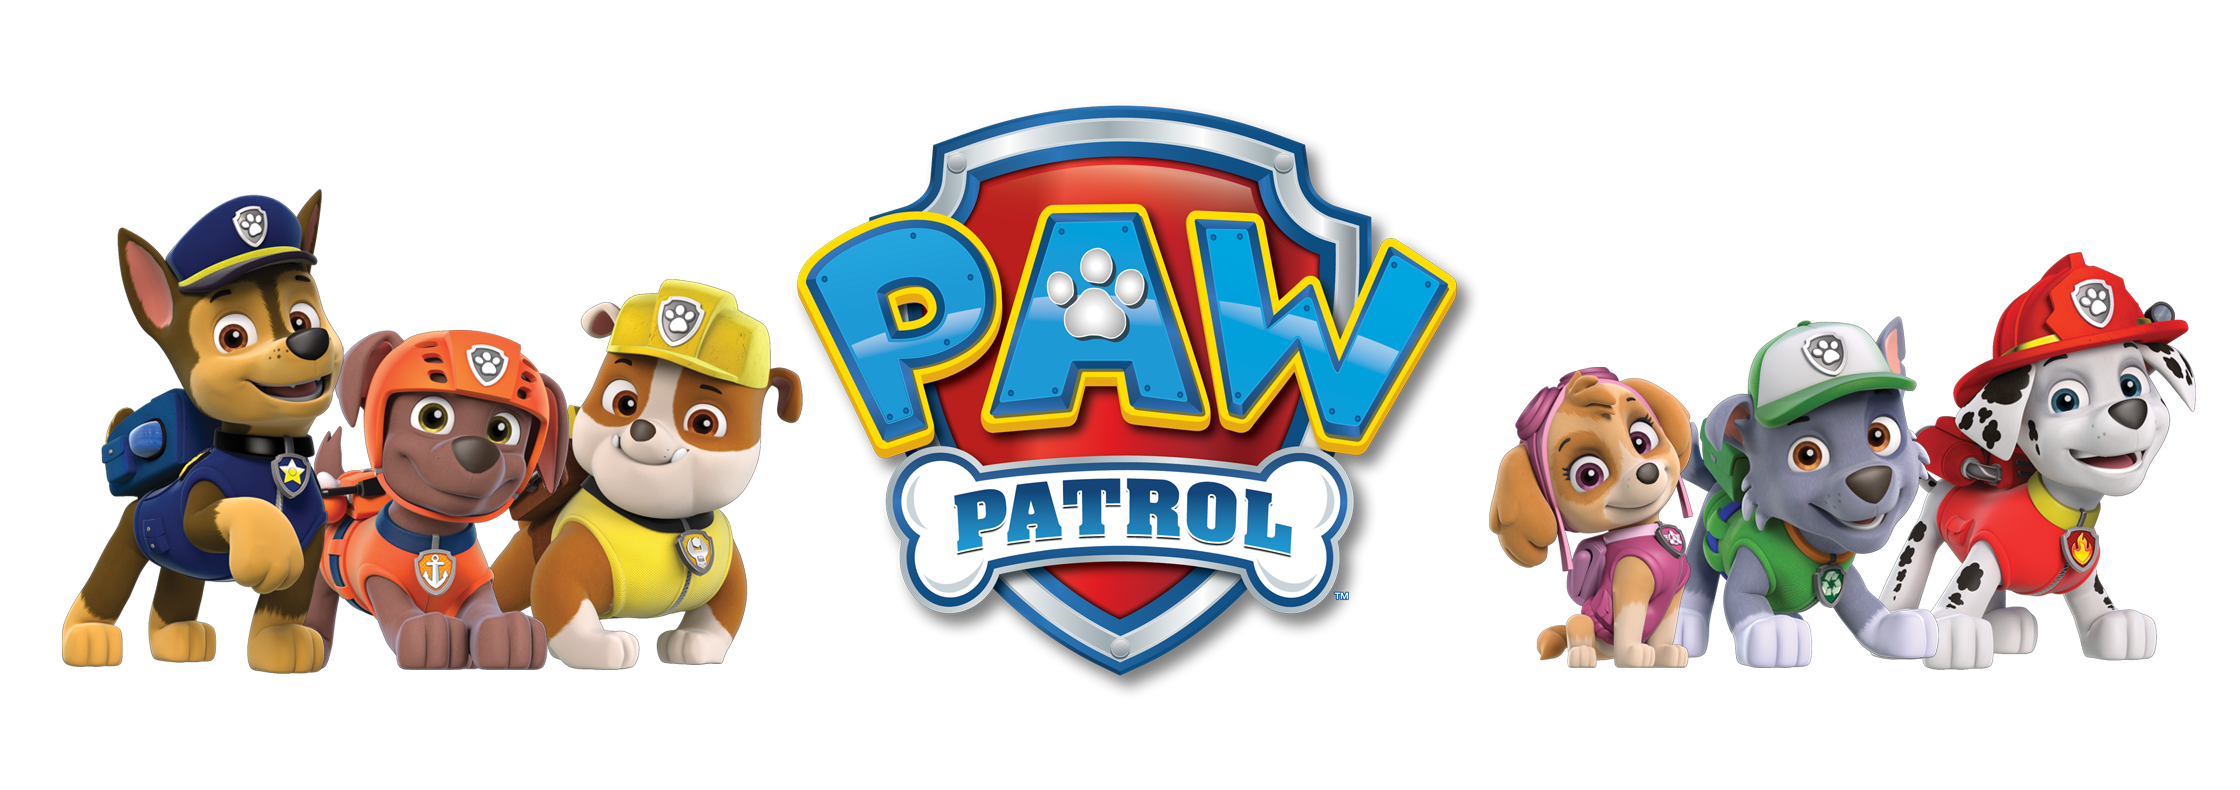 Paw Patrol Party Rubble Png image #41898